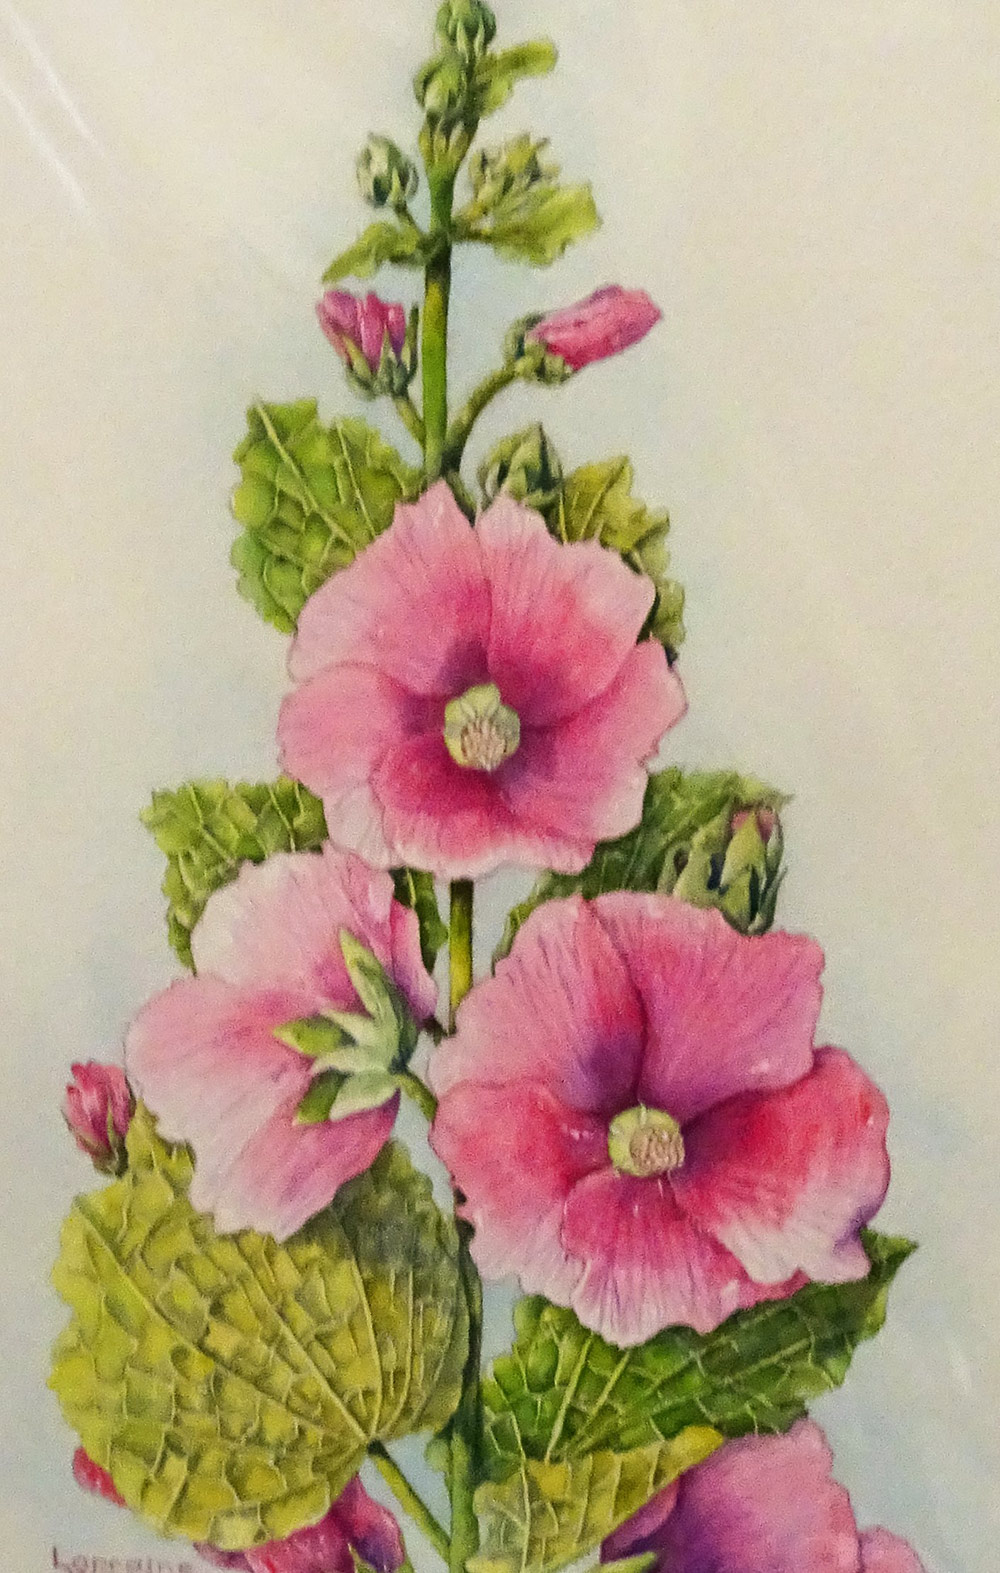 Hollyhocks by Lorraine Winchester